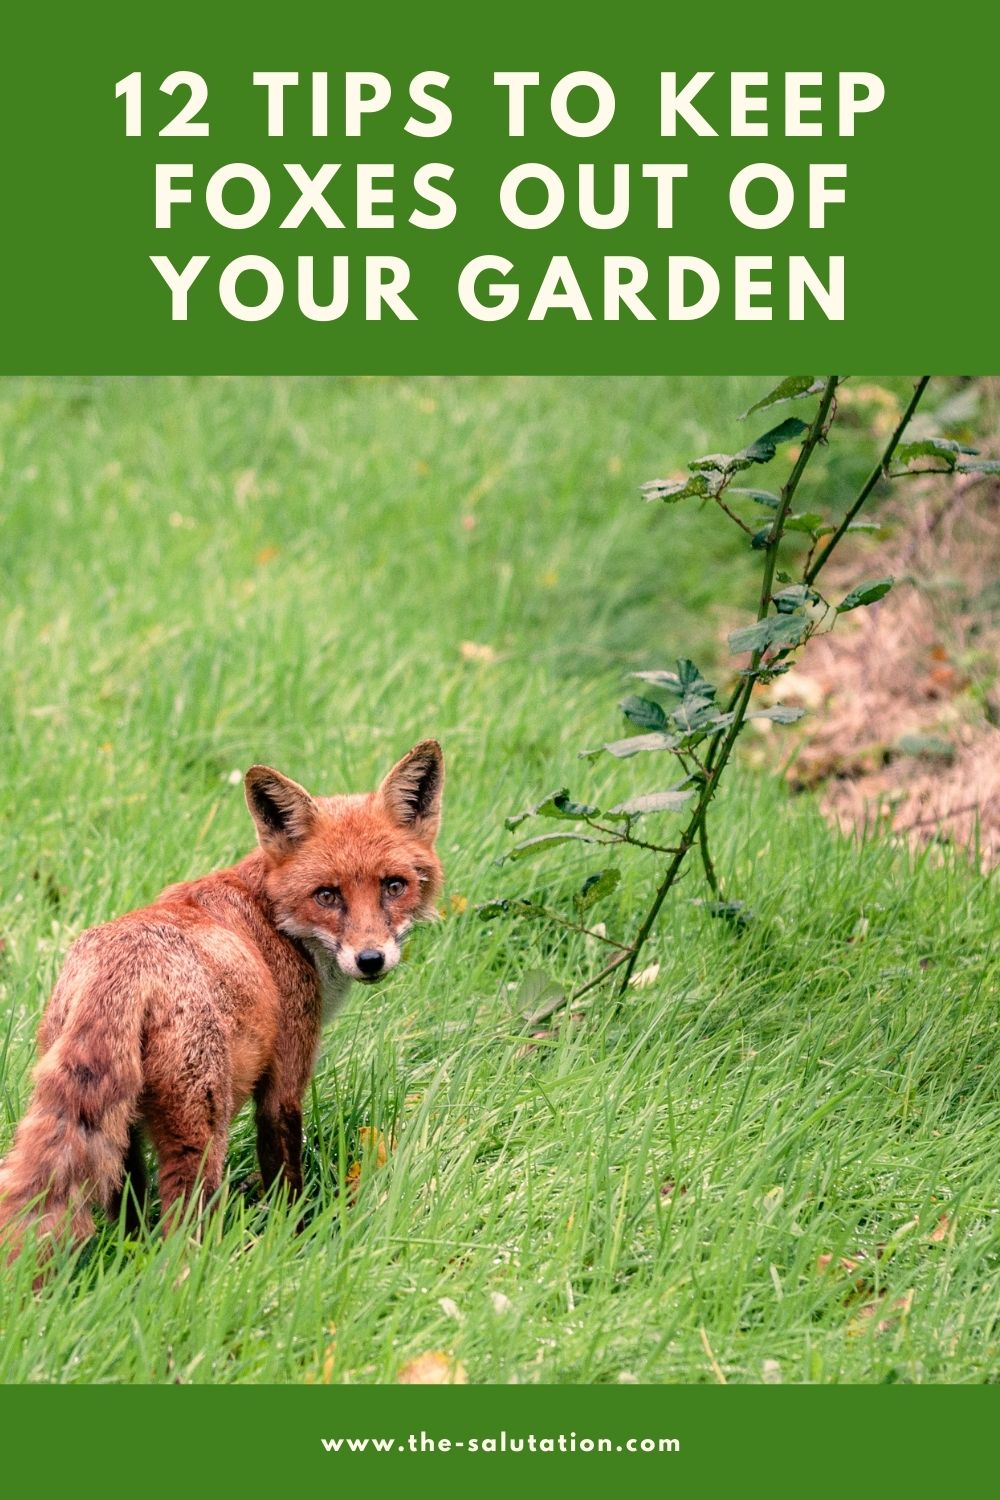 12 Tips to Keep Foxes Out of Your Garden 2